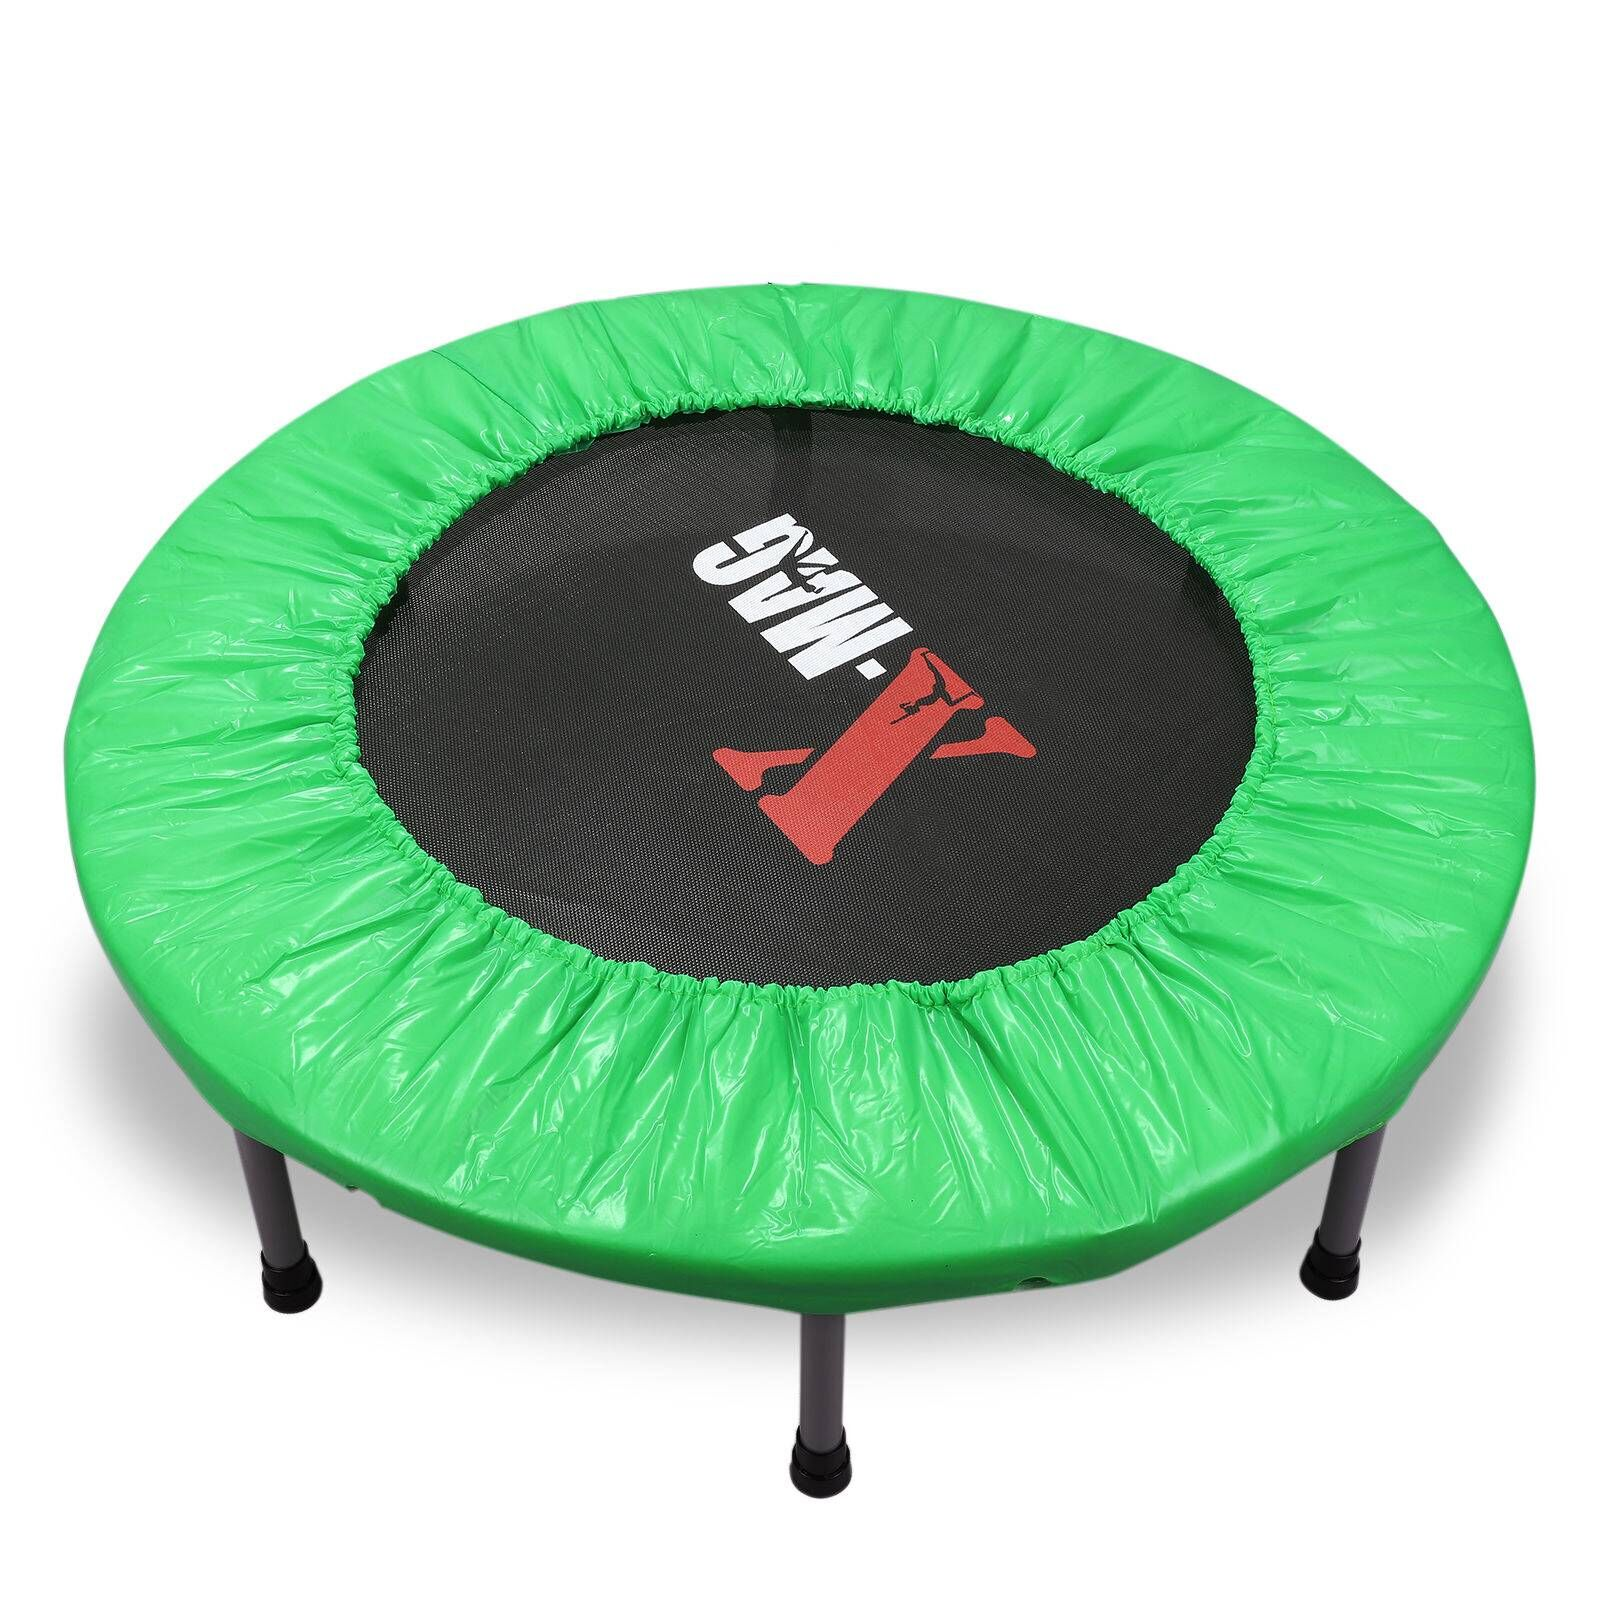 "X-MAG 36"" Rebounder Fitness Exercise Trampoline Jumper Gym With Cardio Monitor"